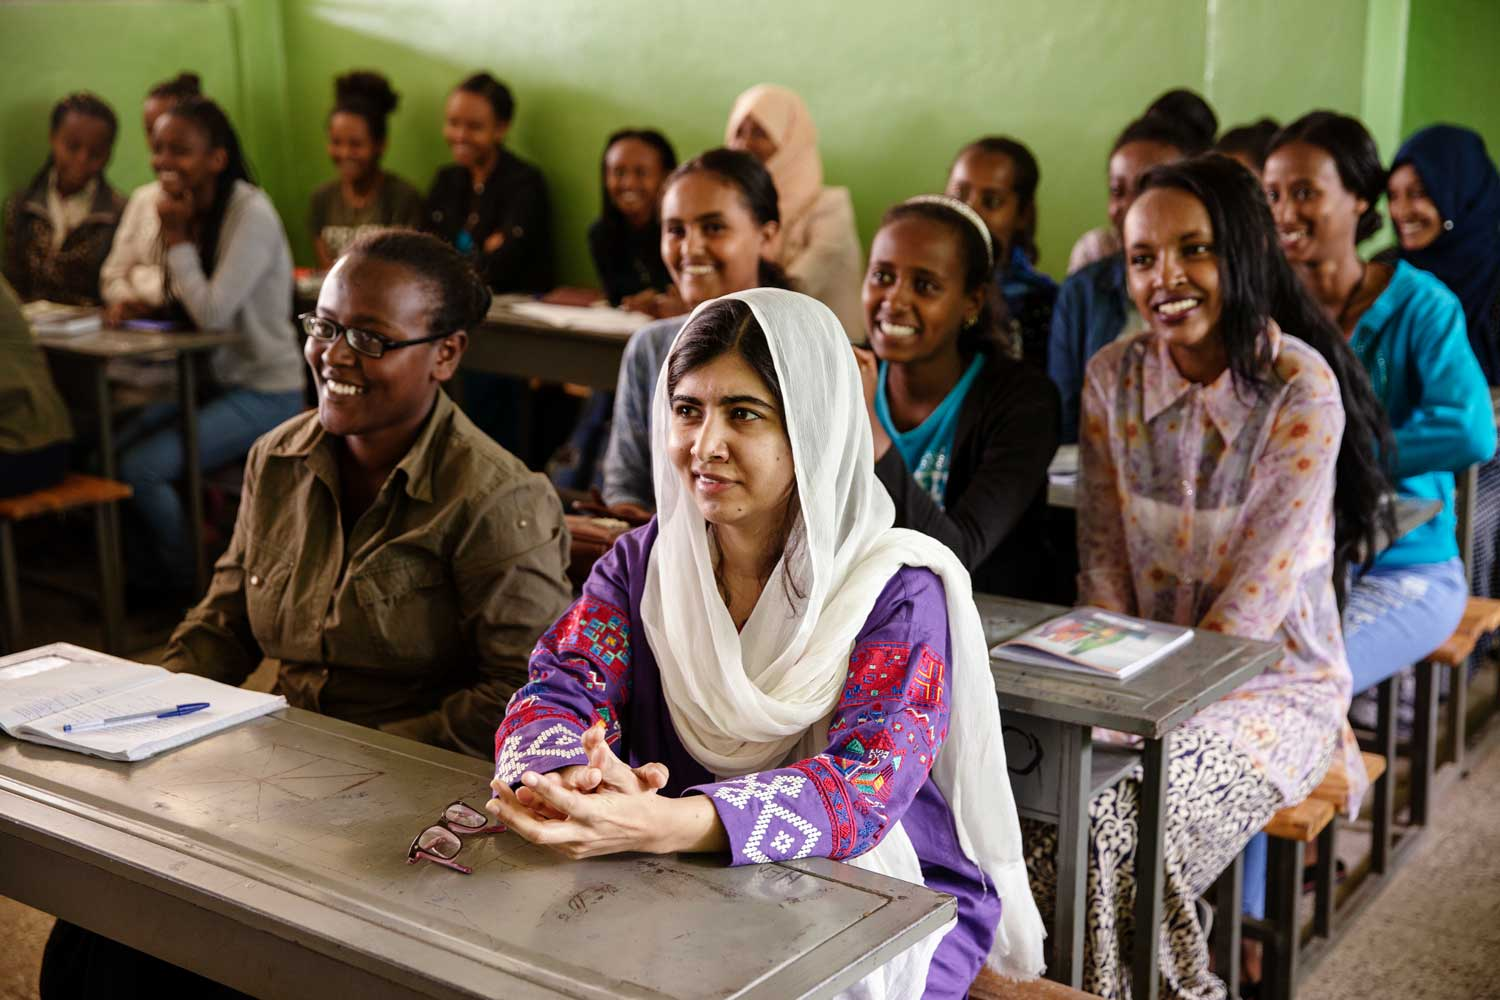 Malala sits at a classroom desk among a group of young women in an Ethiopian classroom.